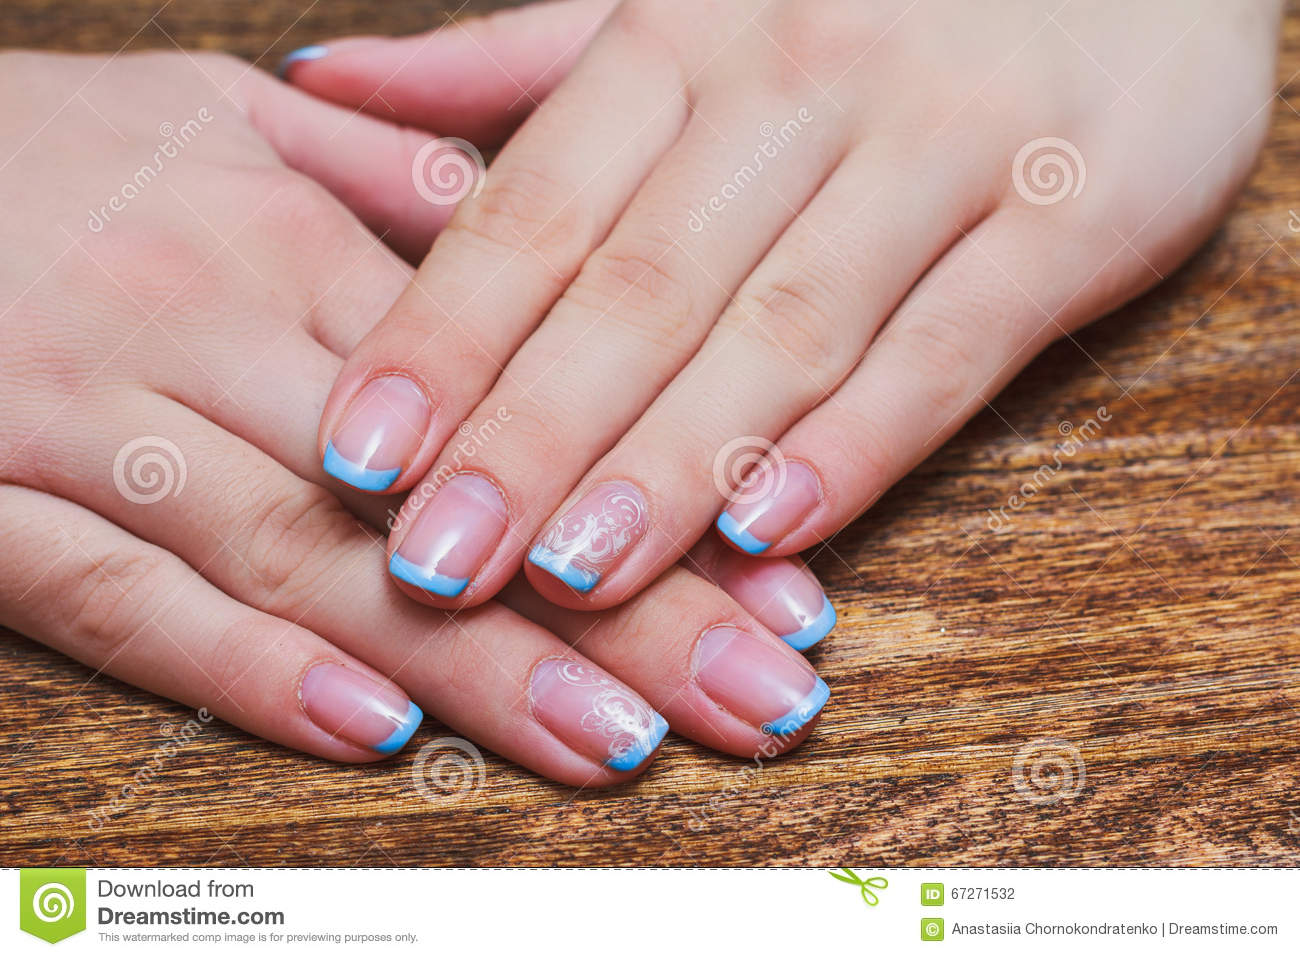 French Nail Art In Light Blue Color Stock Photo - Image of line ...